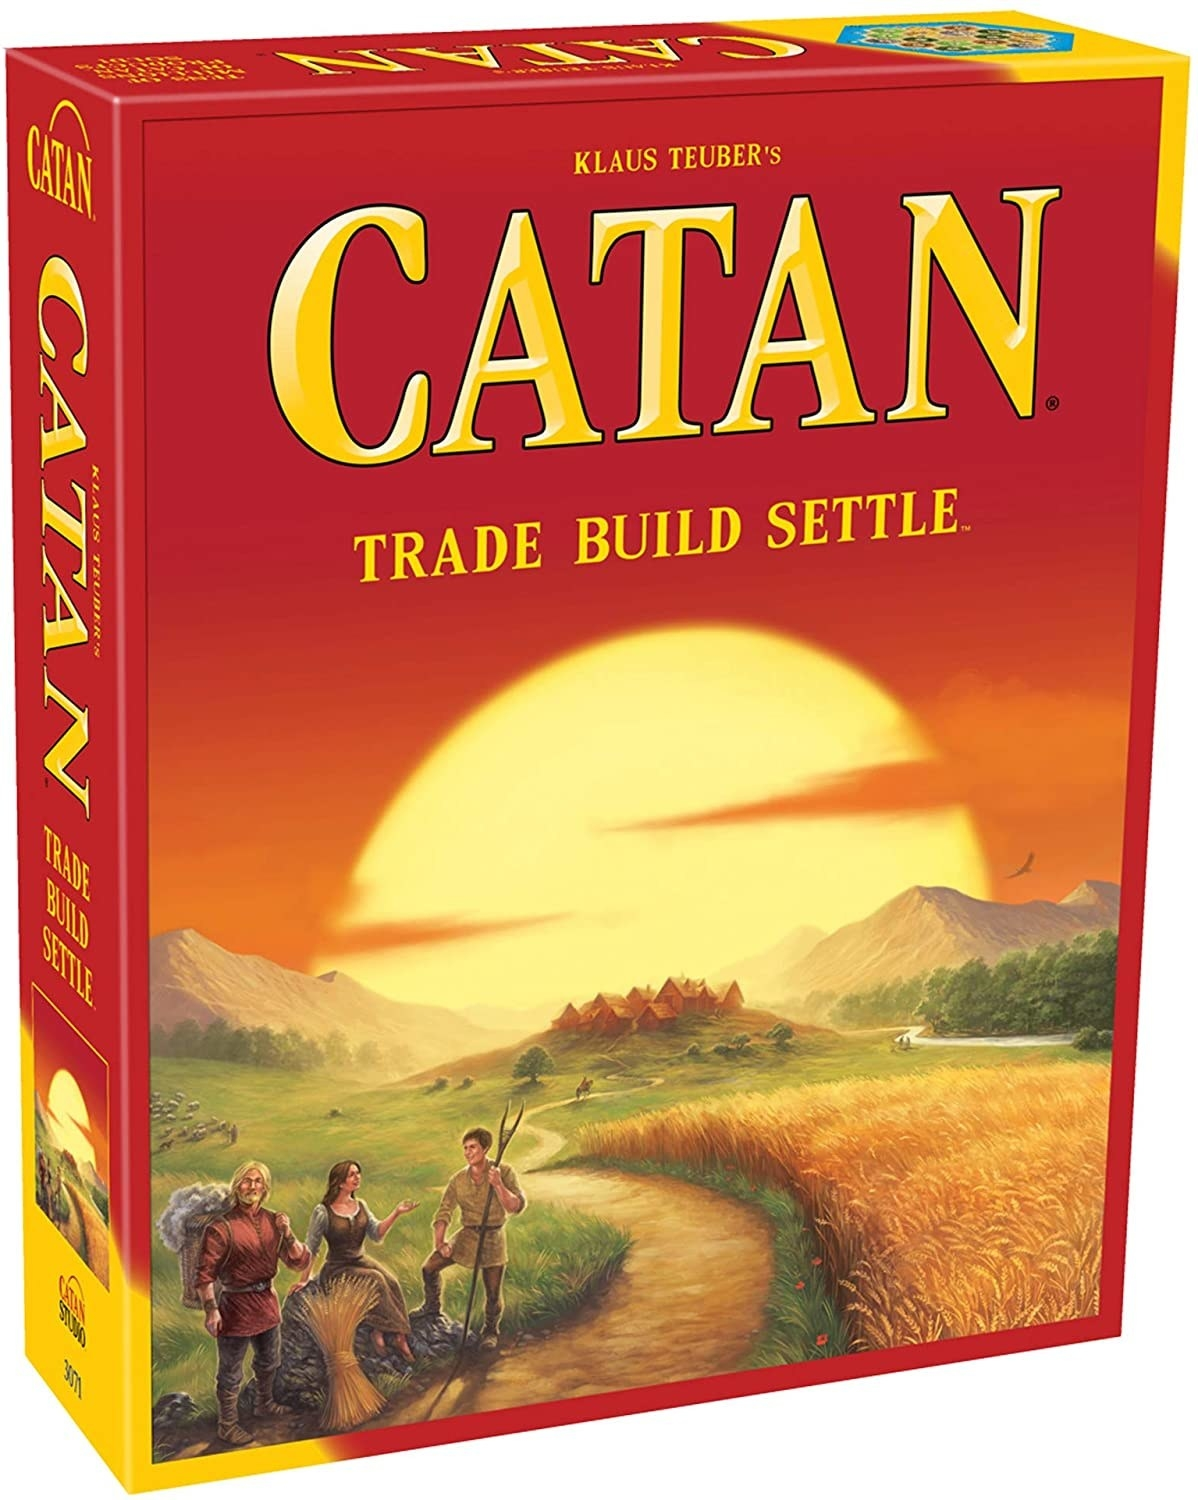 Catan board game box